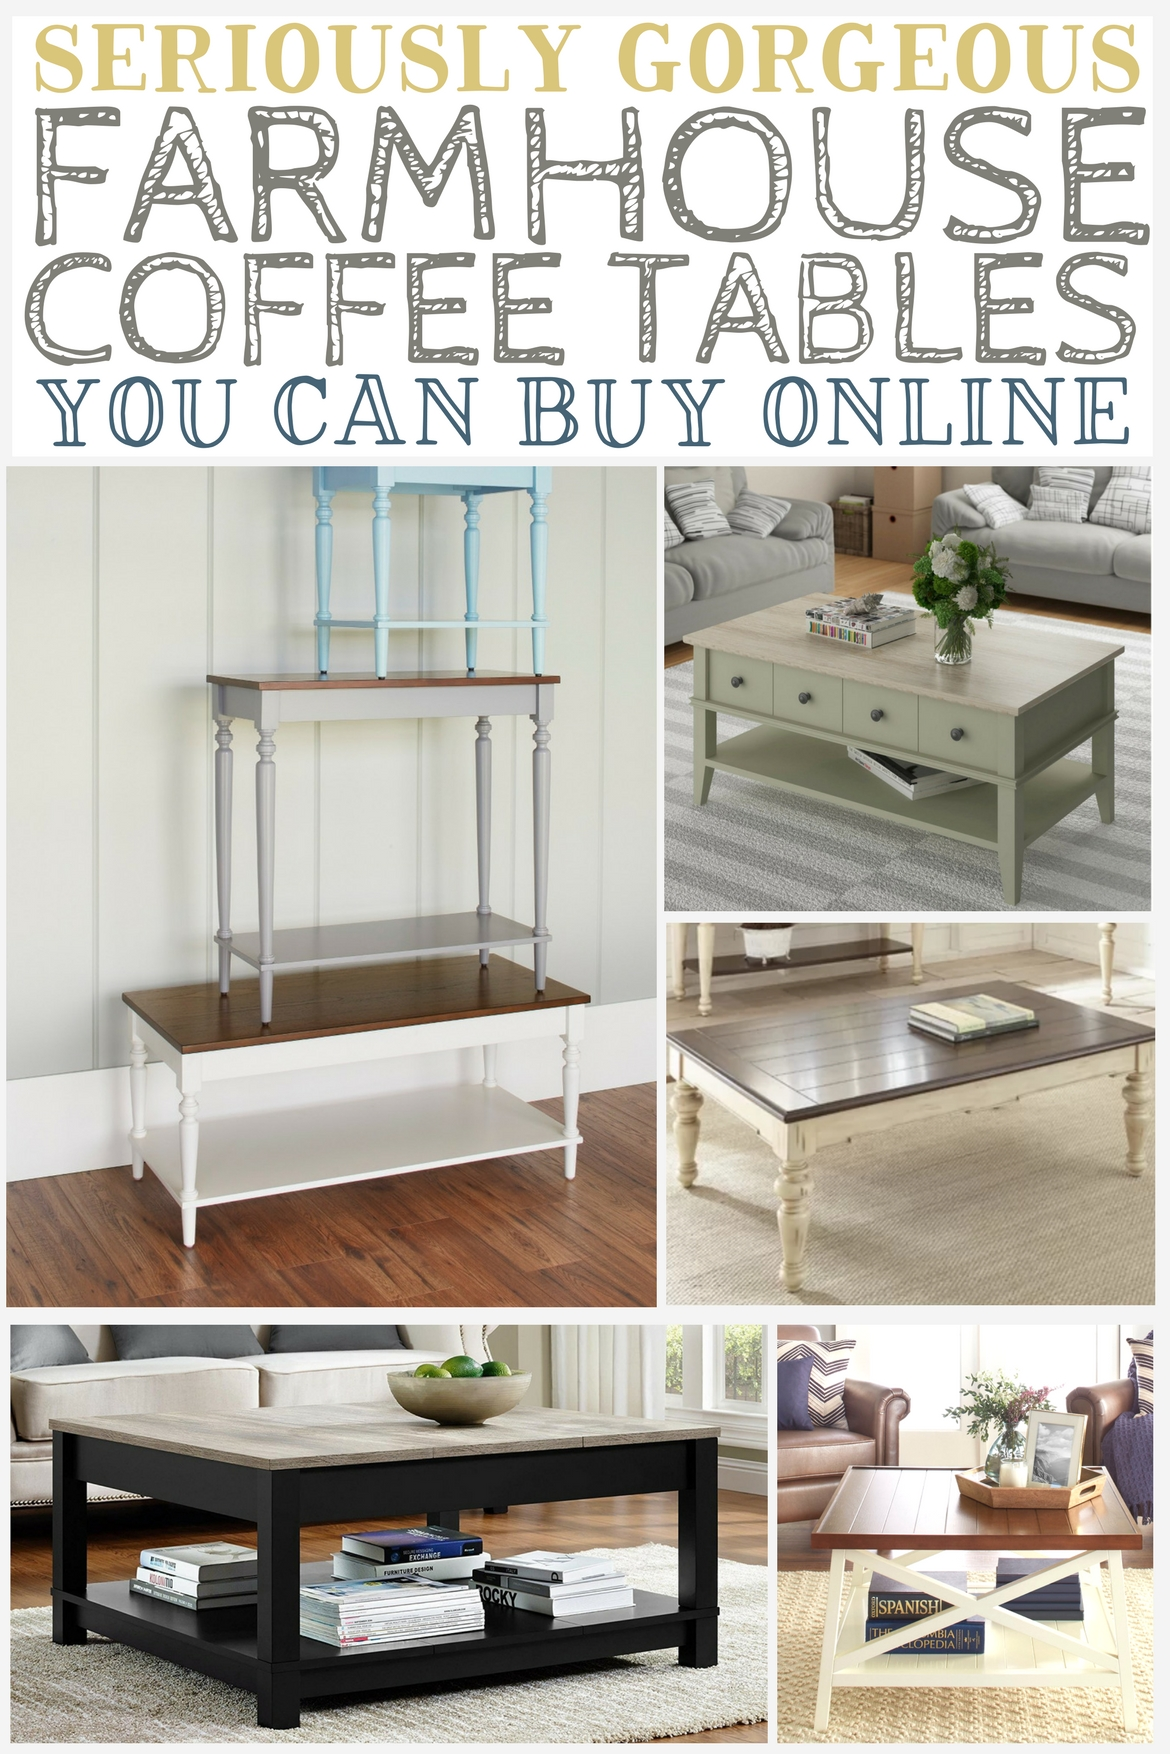 Farmhouse Coffee Shop Seriously Gorgeous Farmhouse Coffee Tables You Can Buy Online